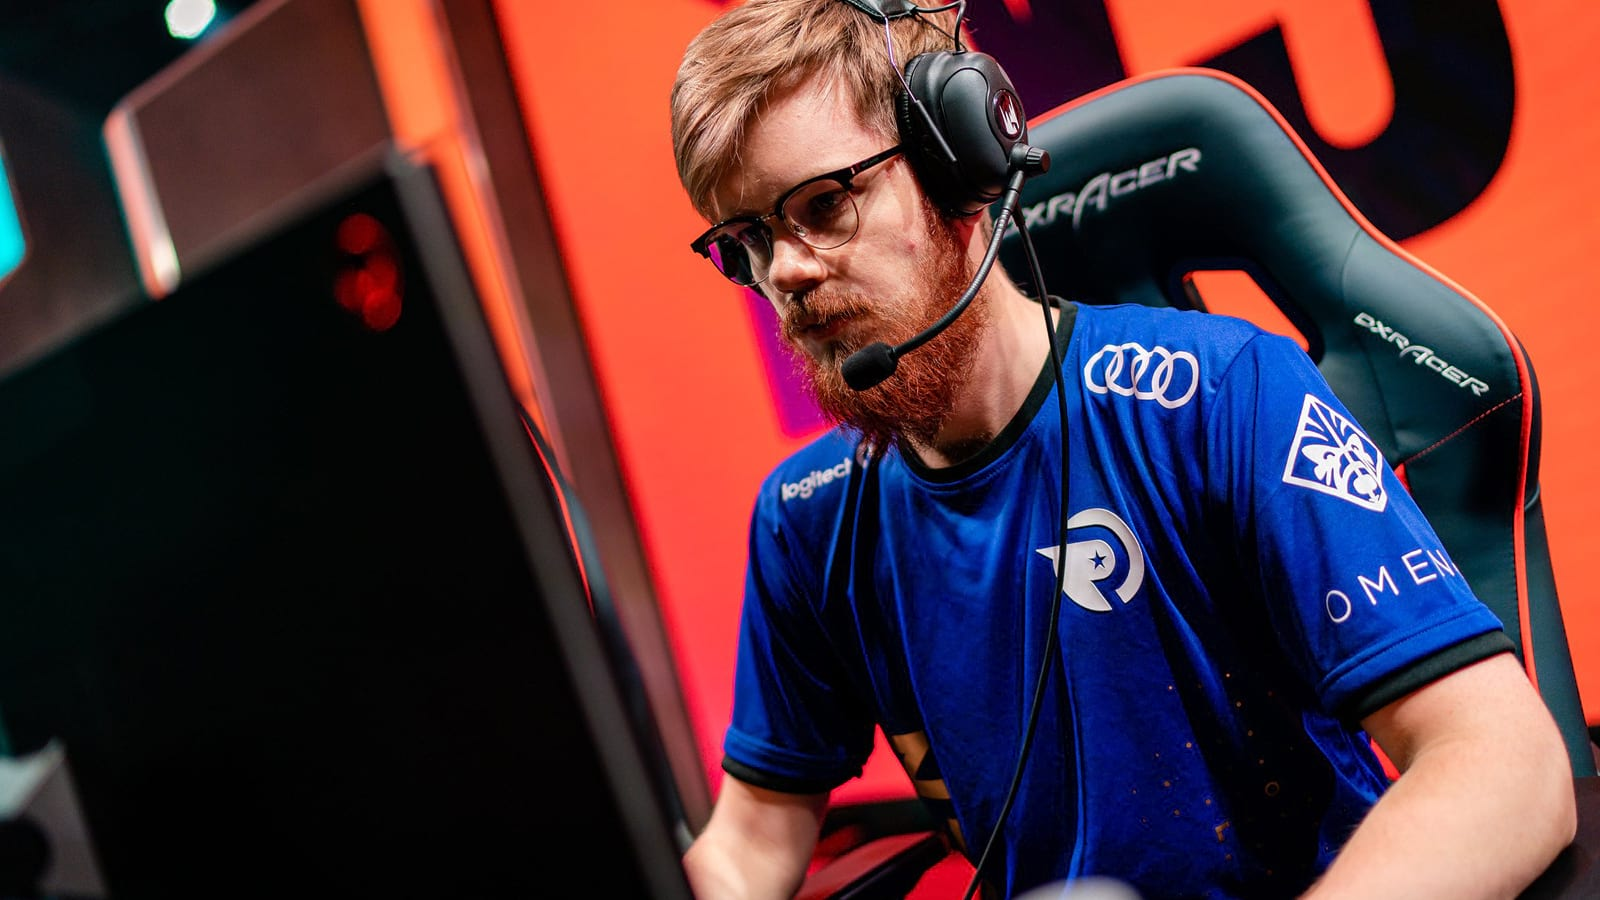 Nukeduck playing for Origen at LEC